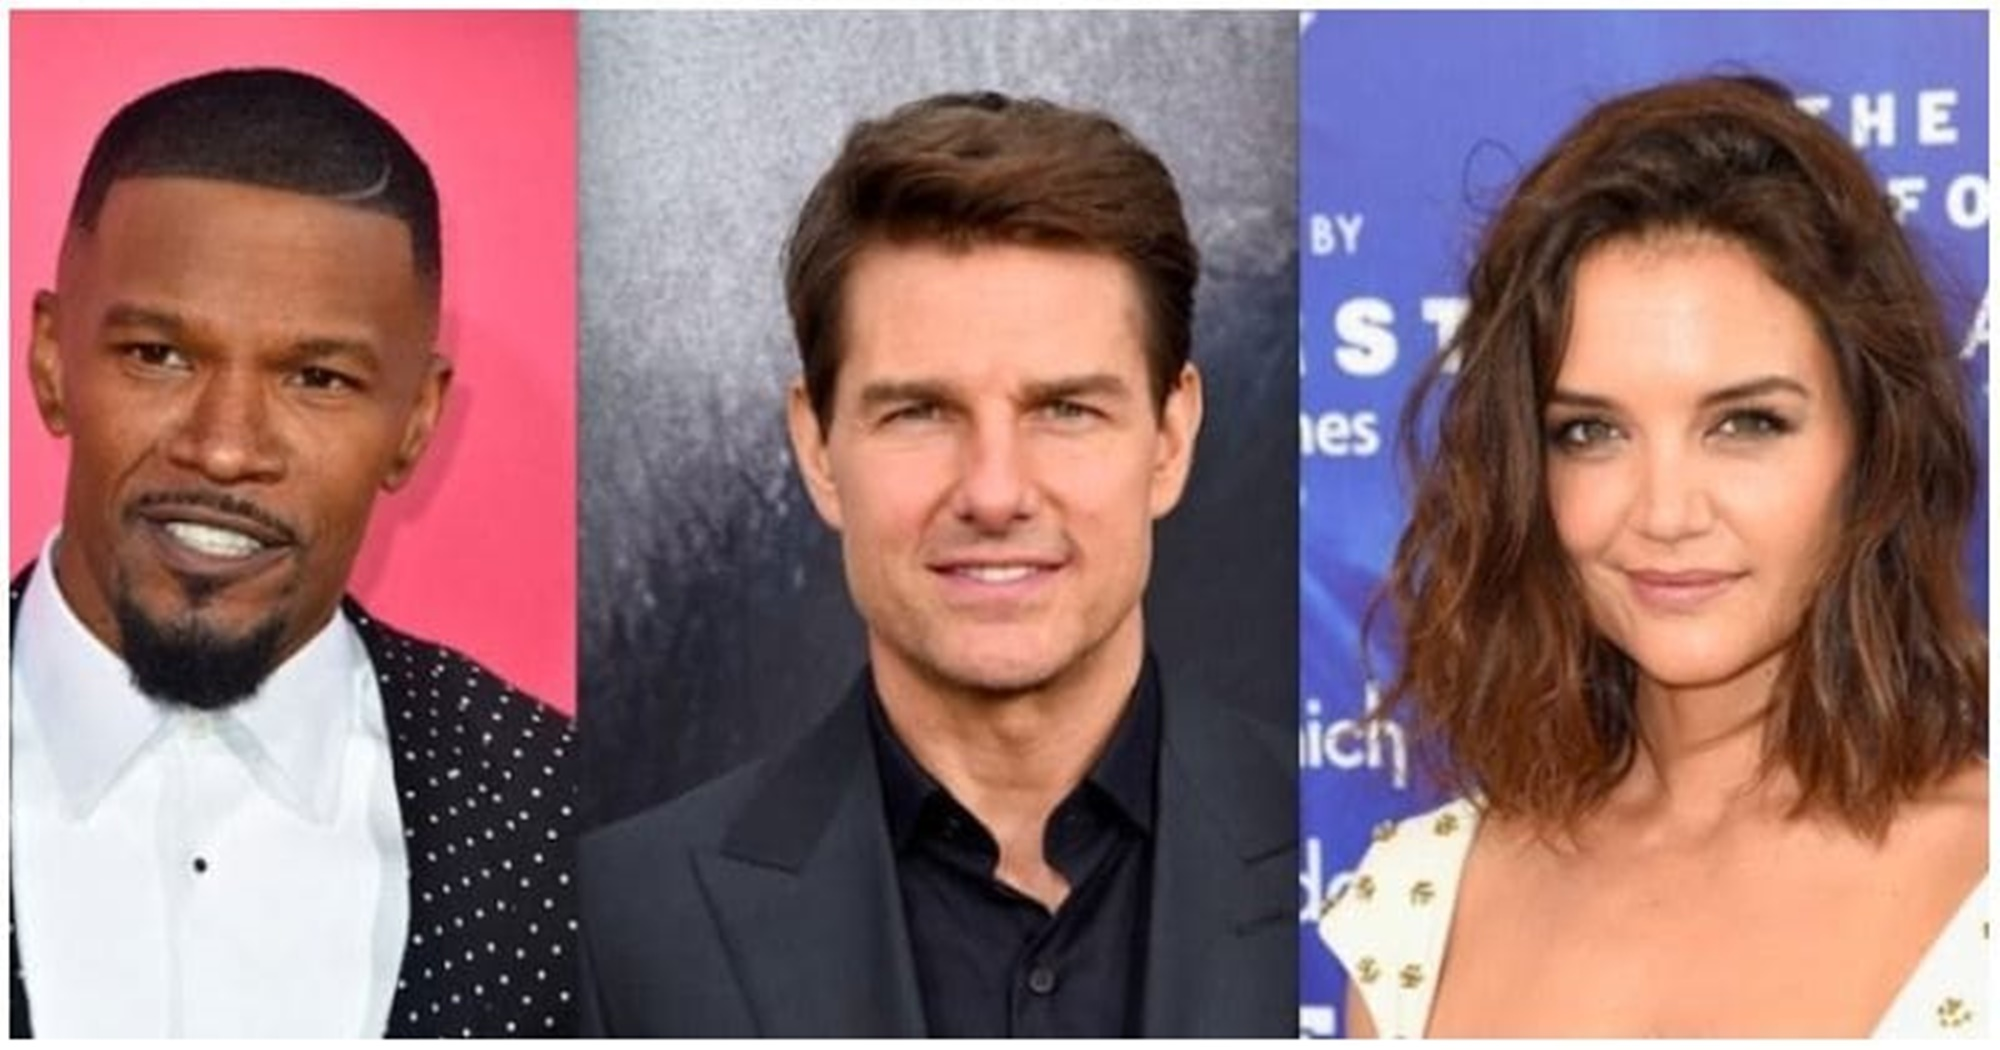 tom-cruise-deeply-affected-by-relationship-of-katie-holmes-and-jamie-foxx-report